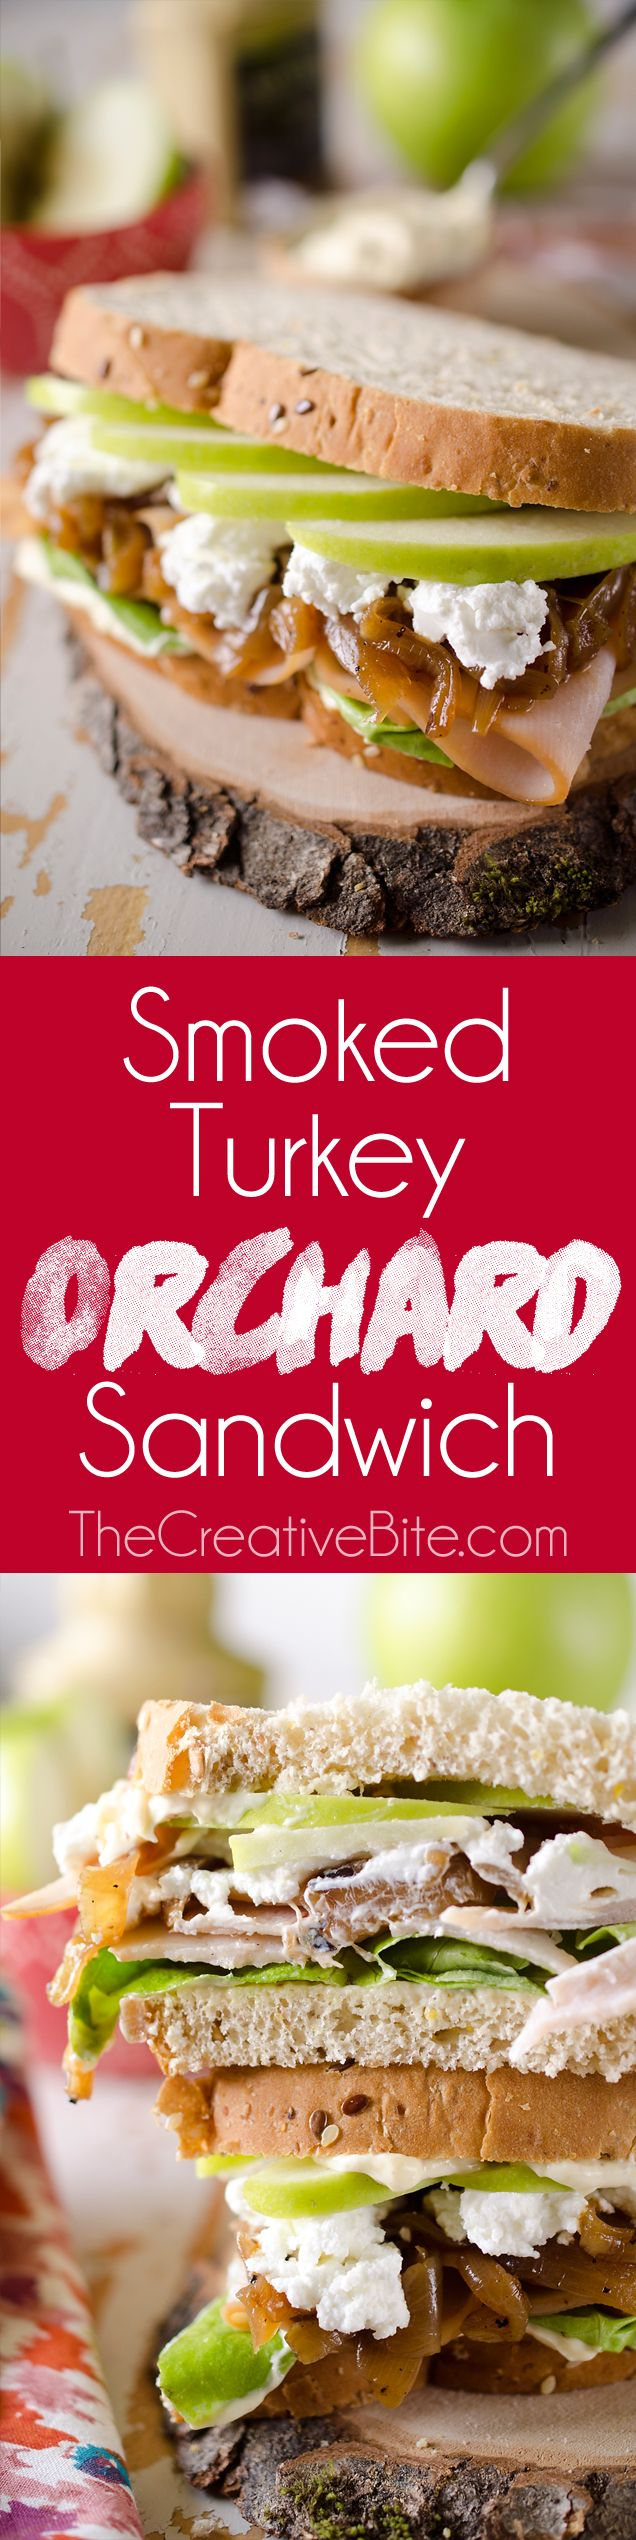 This Smoked Turkey Orchard Sandwich is a wholesome and easy 5 minute lunch recipe made with multi-grain bread, caramelized onions, goat cheese, crisp green apples and Smoked Deli Turkey.  http://www.thecreativebite.com/smoked-turkey-orchard-sandwich/?utm_campaign=coschedule&utm_source=pinterest&utm_medium=Danielle%20%7C%20The%20Creative%20Bite&utm_content=Smoked%20Turkey%20Orchard%20Sandwich